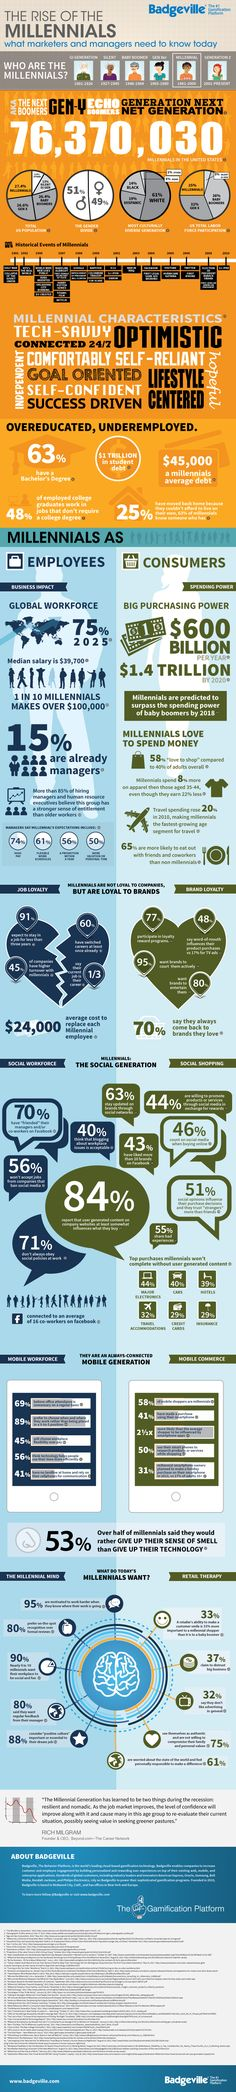 Brands: Time To Meet The Millennial Generation. The Rise of the Millenials #infographic #marketing